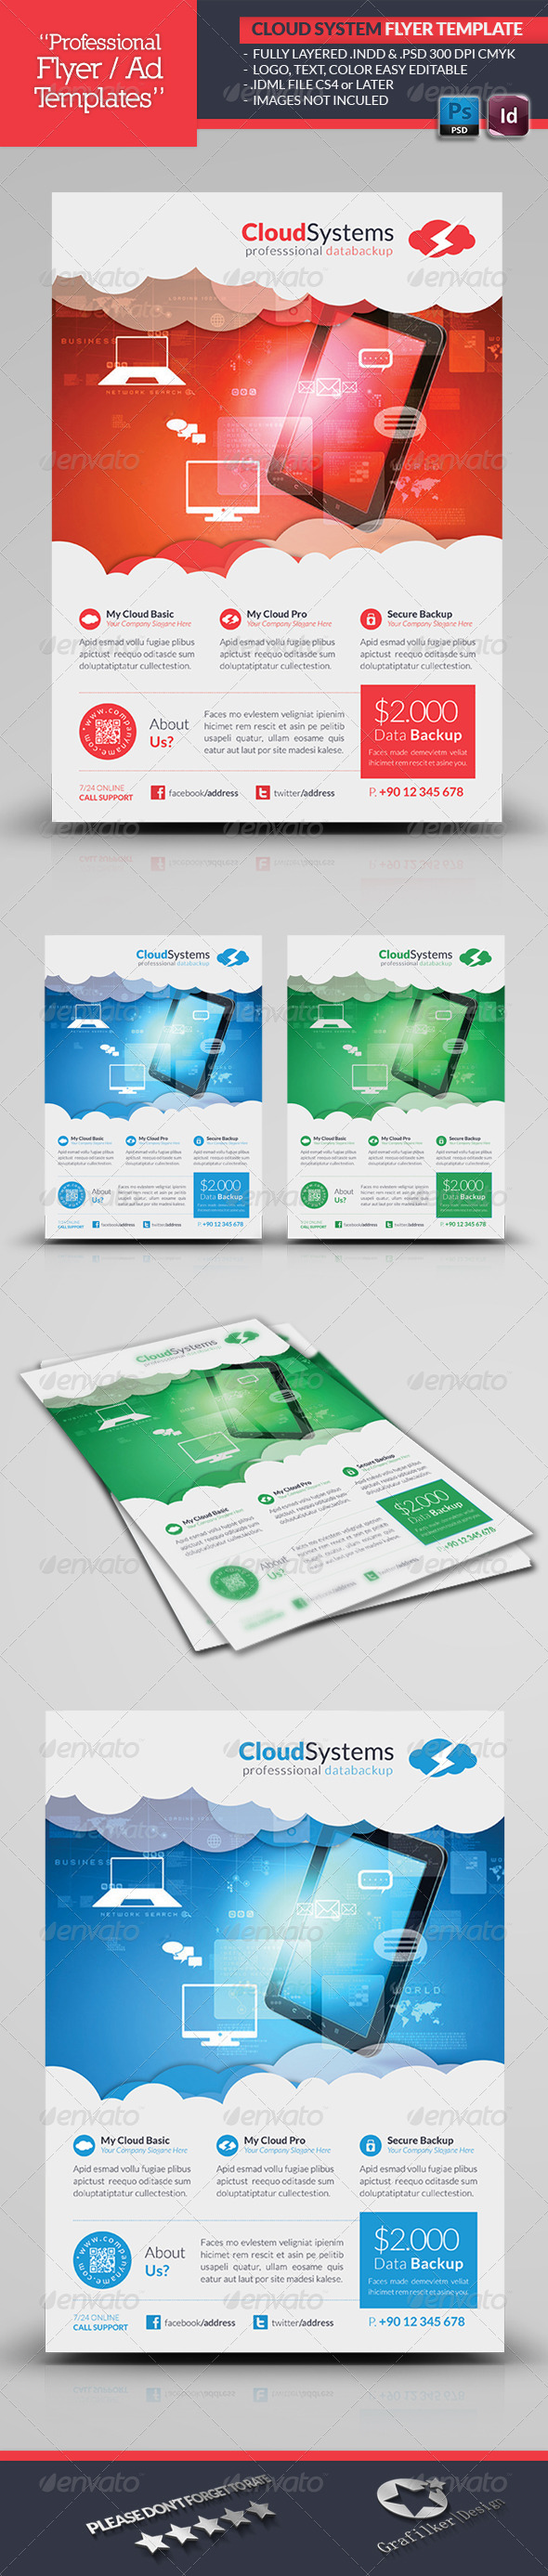 Cloud Systems Flyer Template - Corporate Flyers